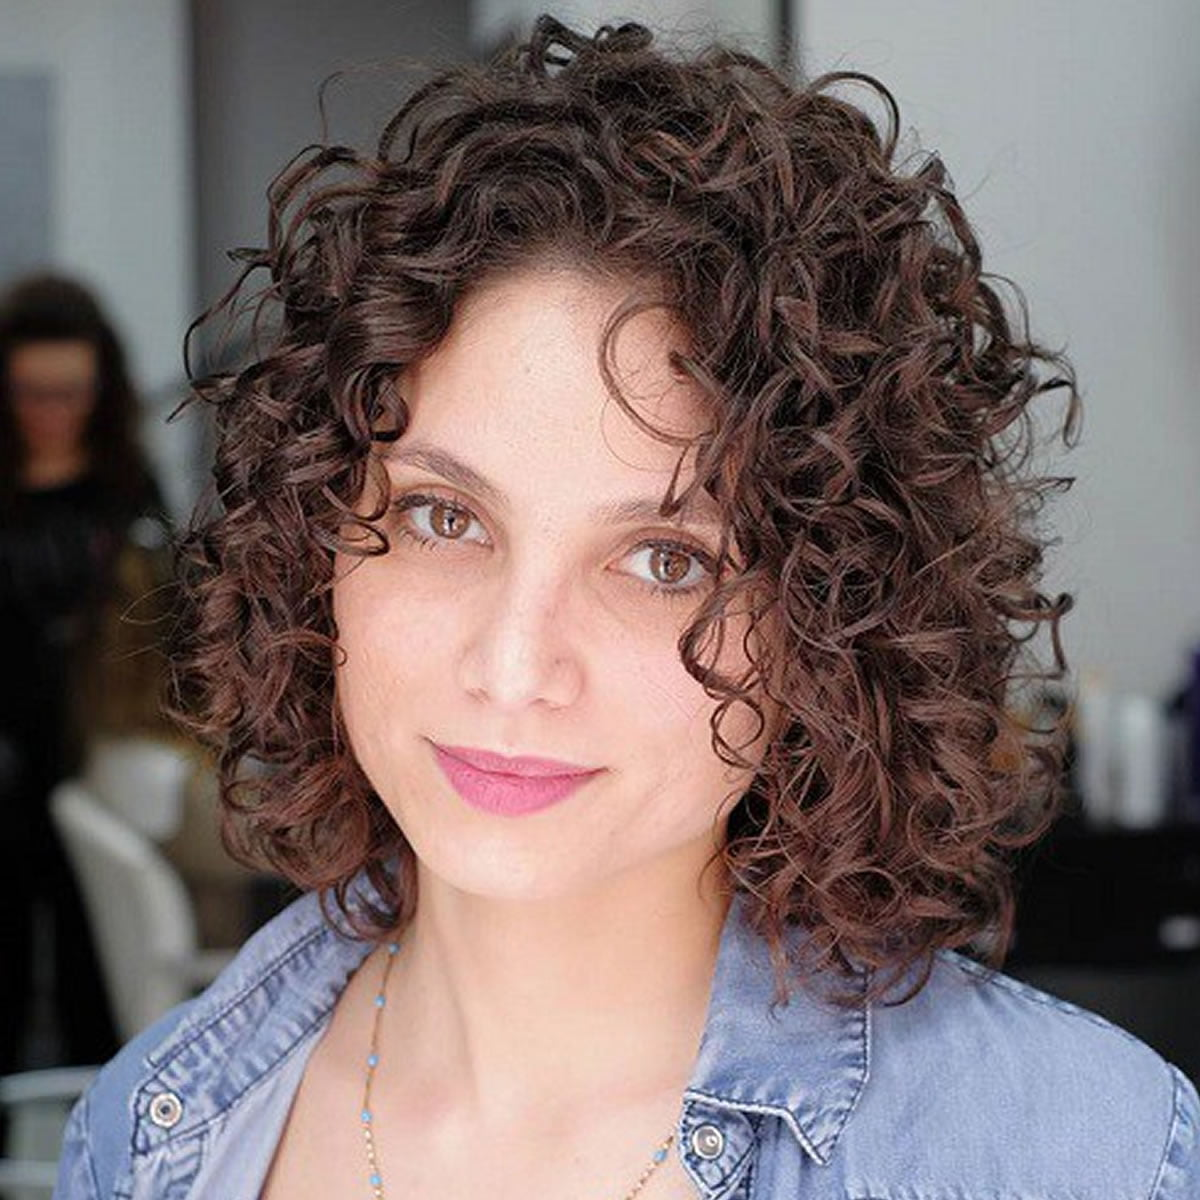 bob haircuts for curly hair curly bob hairstyles for autumn amp winter hair 2992